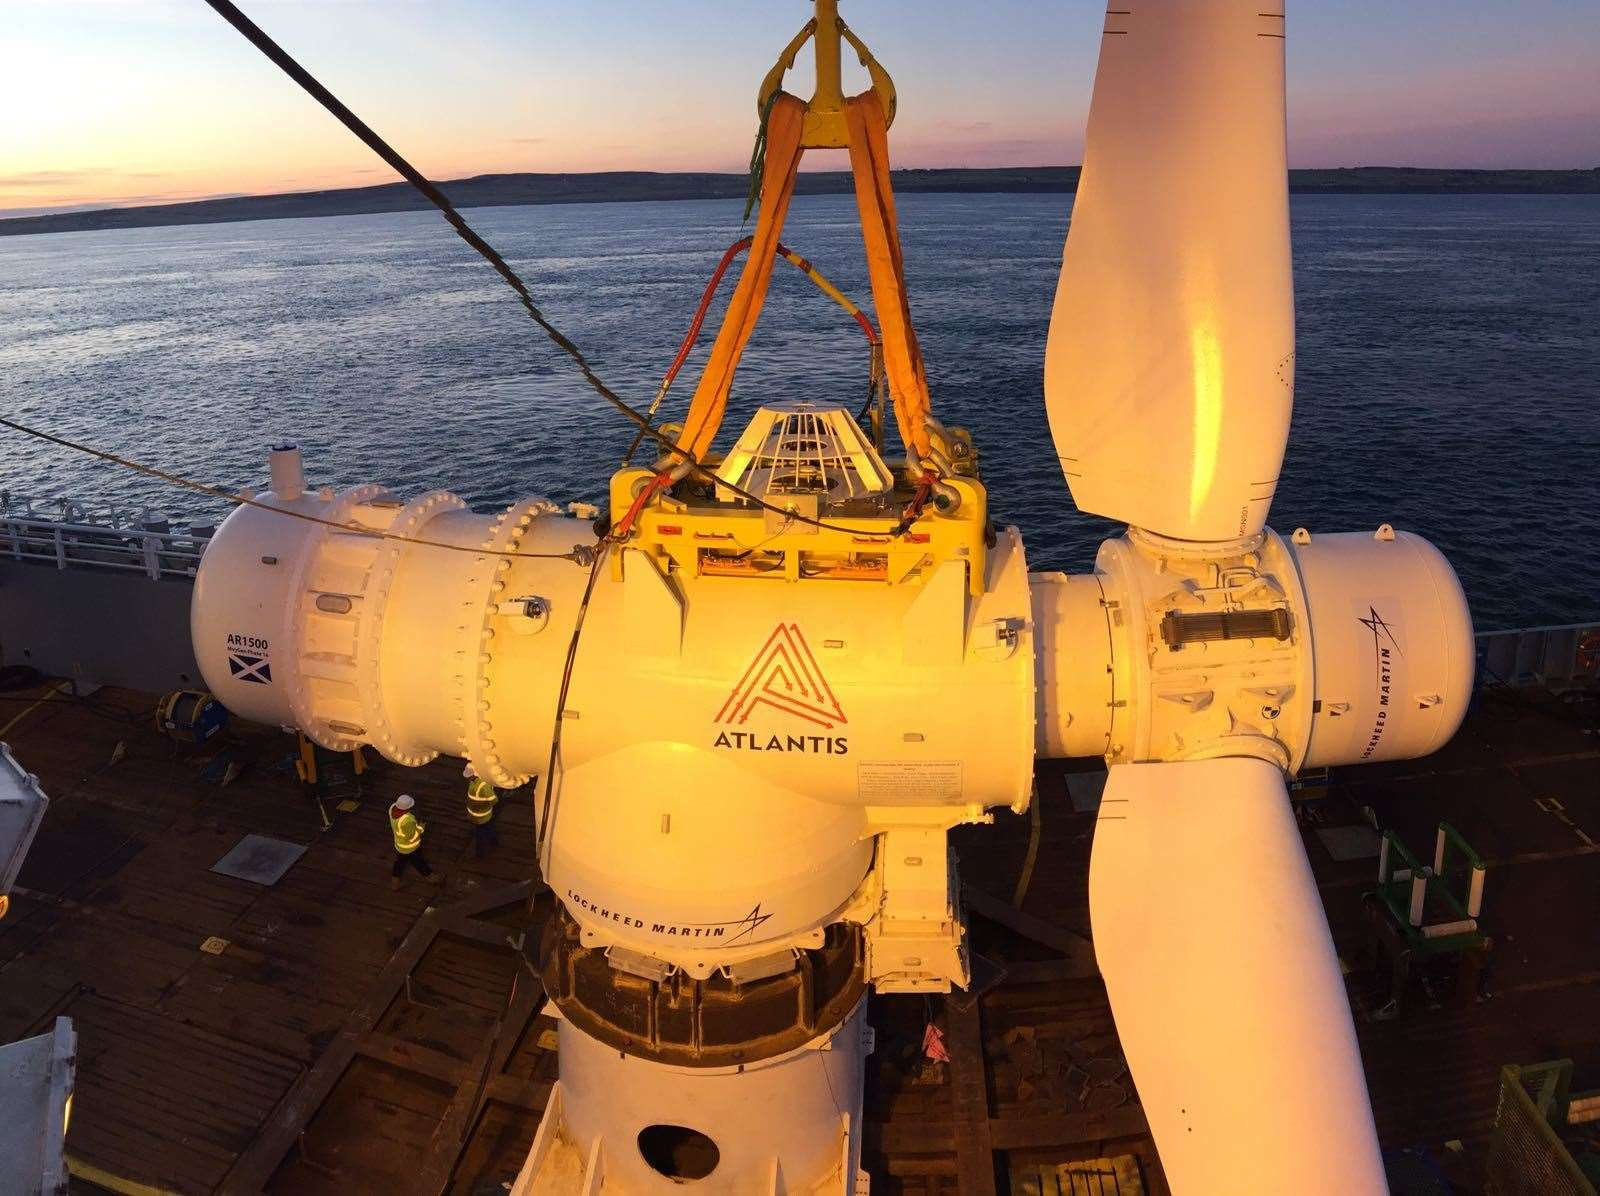 Energy from MeyGen could power the data centre